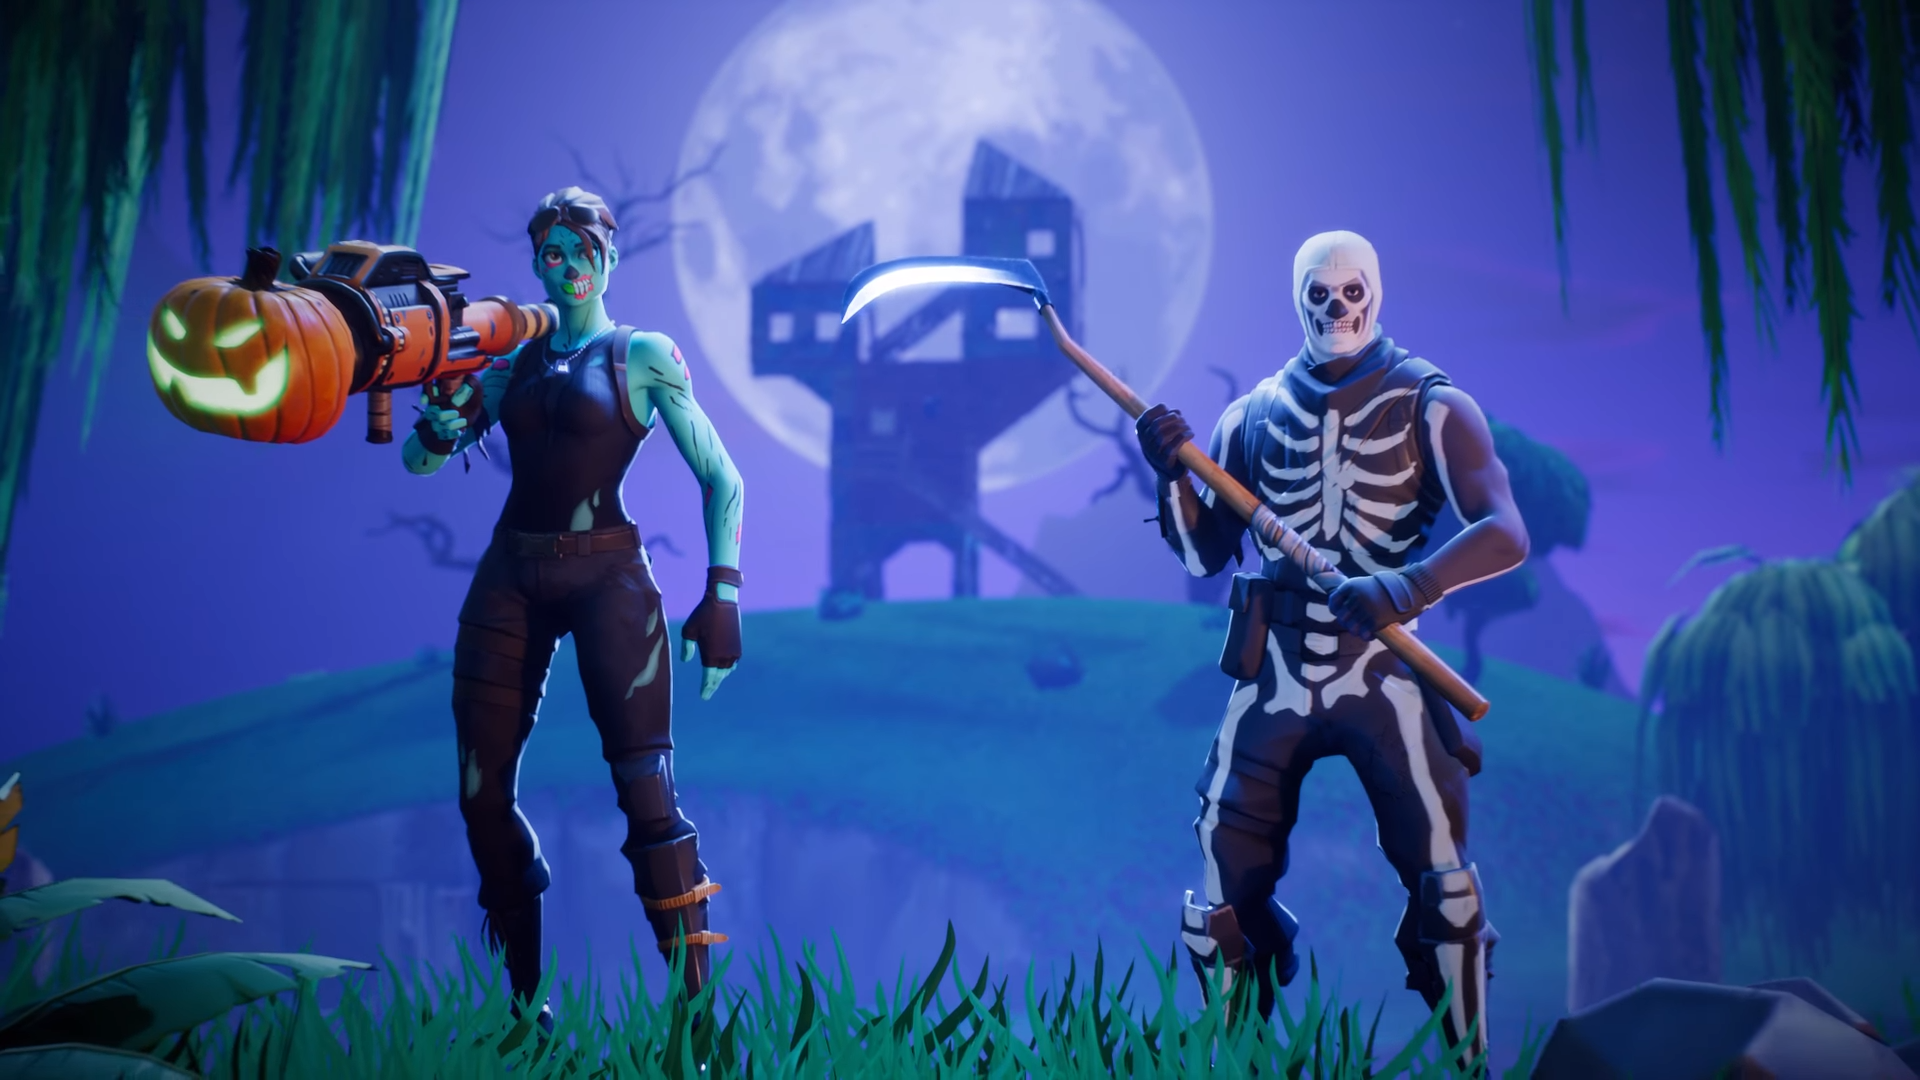 Fortnite Battle Royale Multiplayer Wallpaper 62282 1920x1080